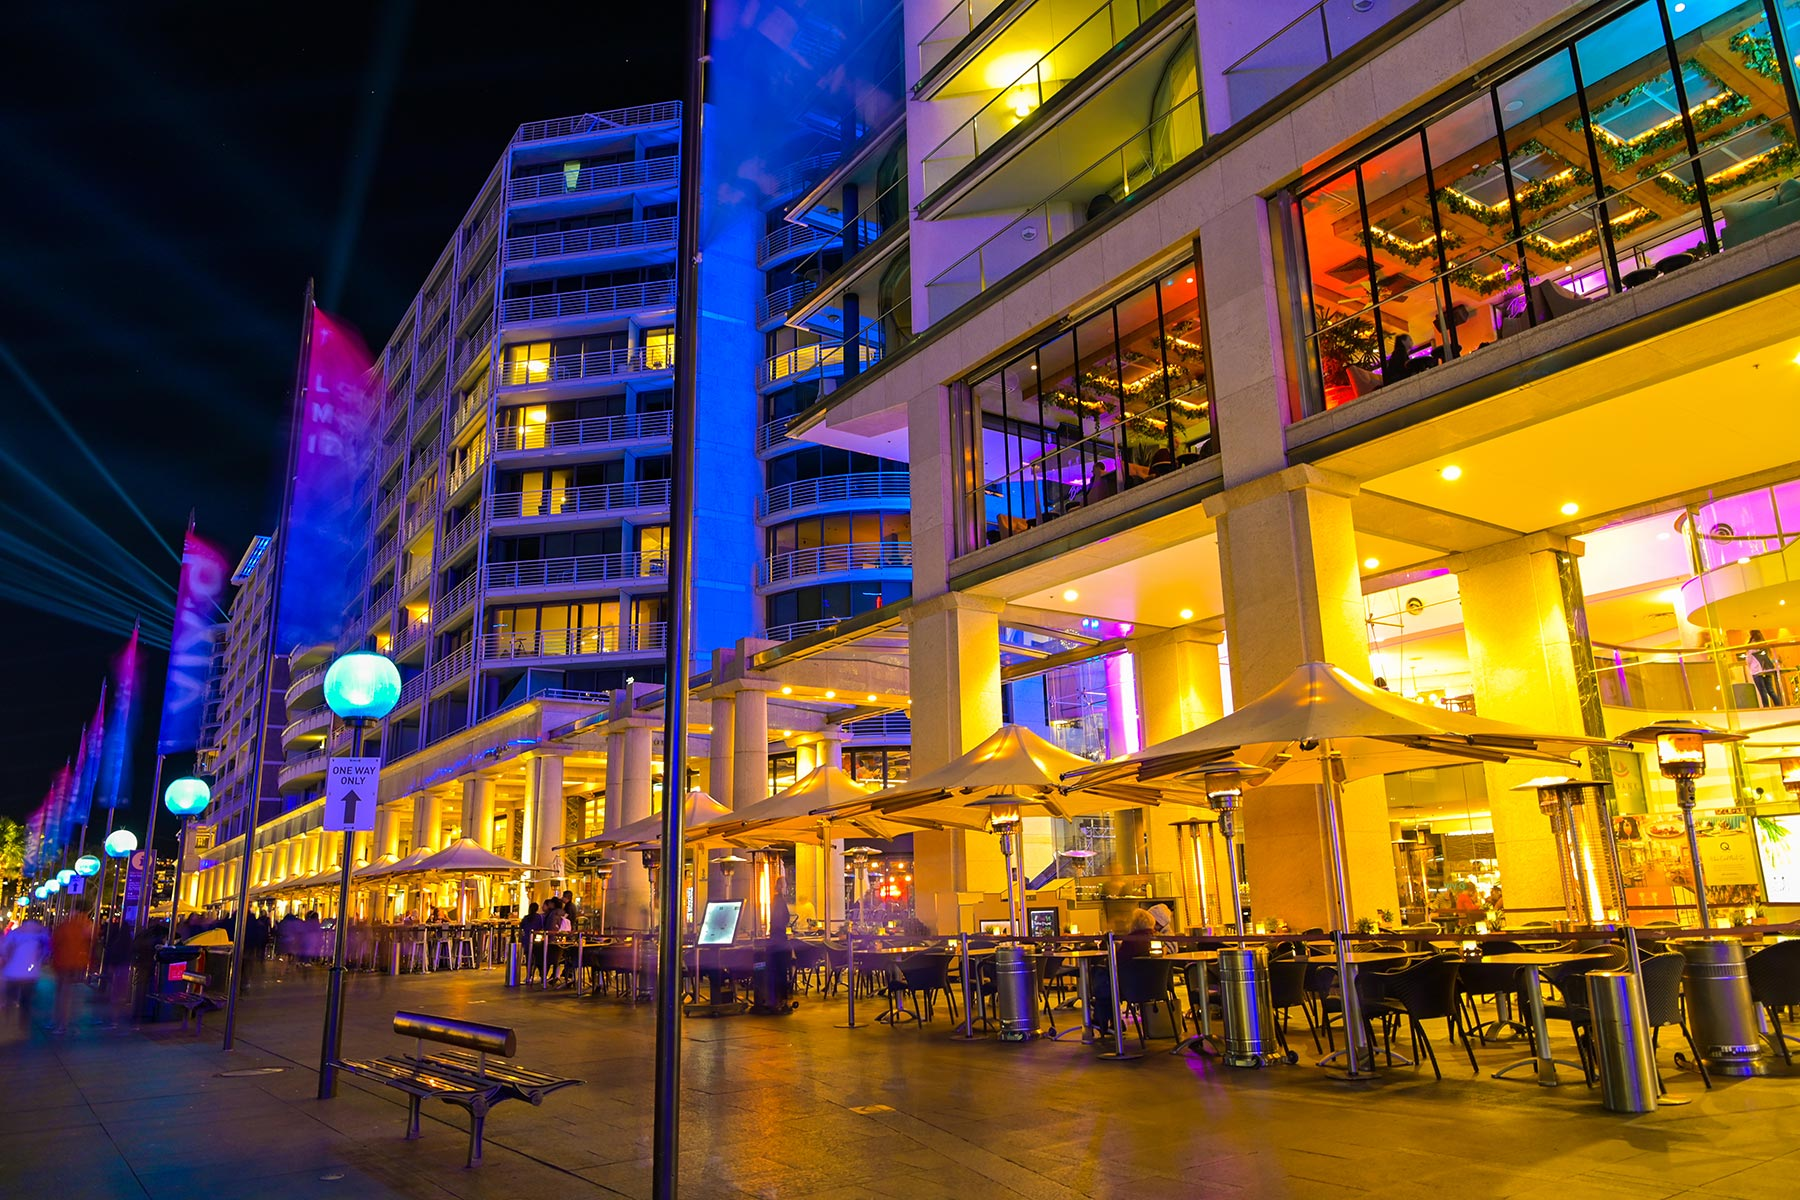 Eastbank Cafe Restaurant – nighttime on Circular Quay promenade, Vivid Festival